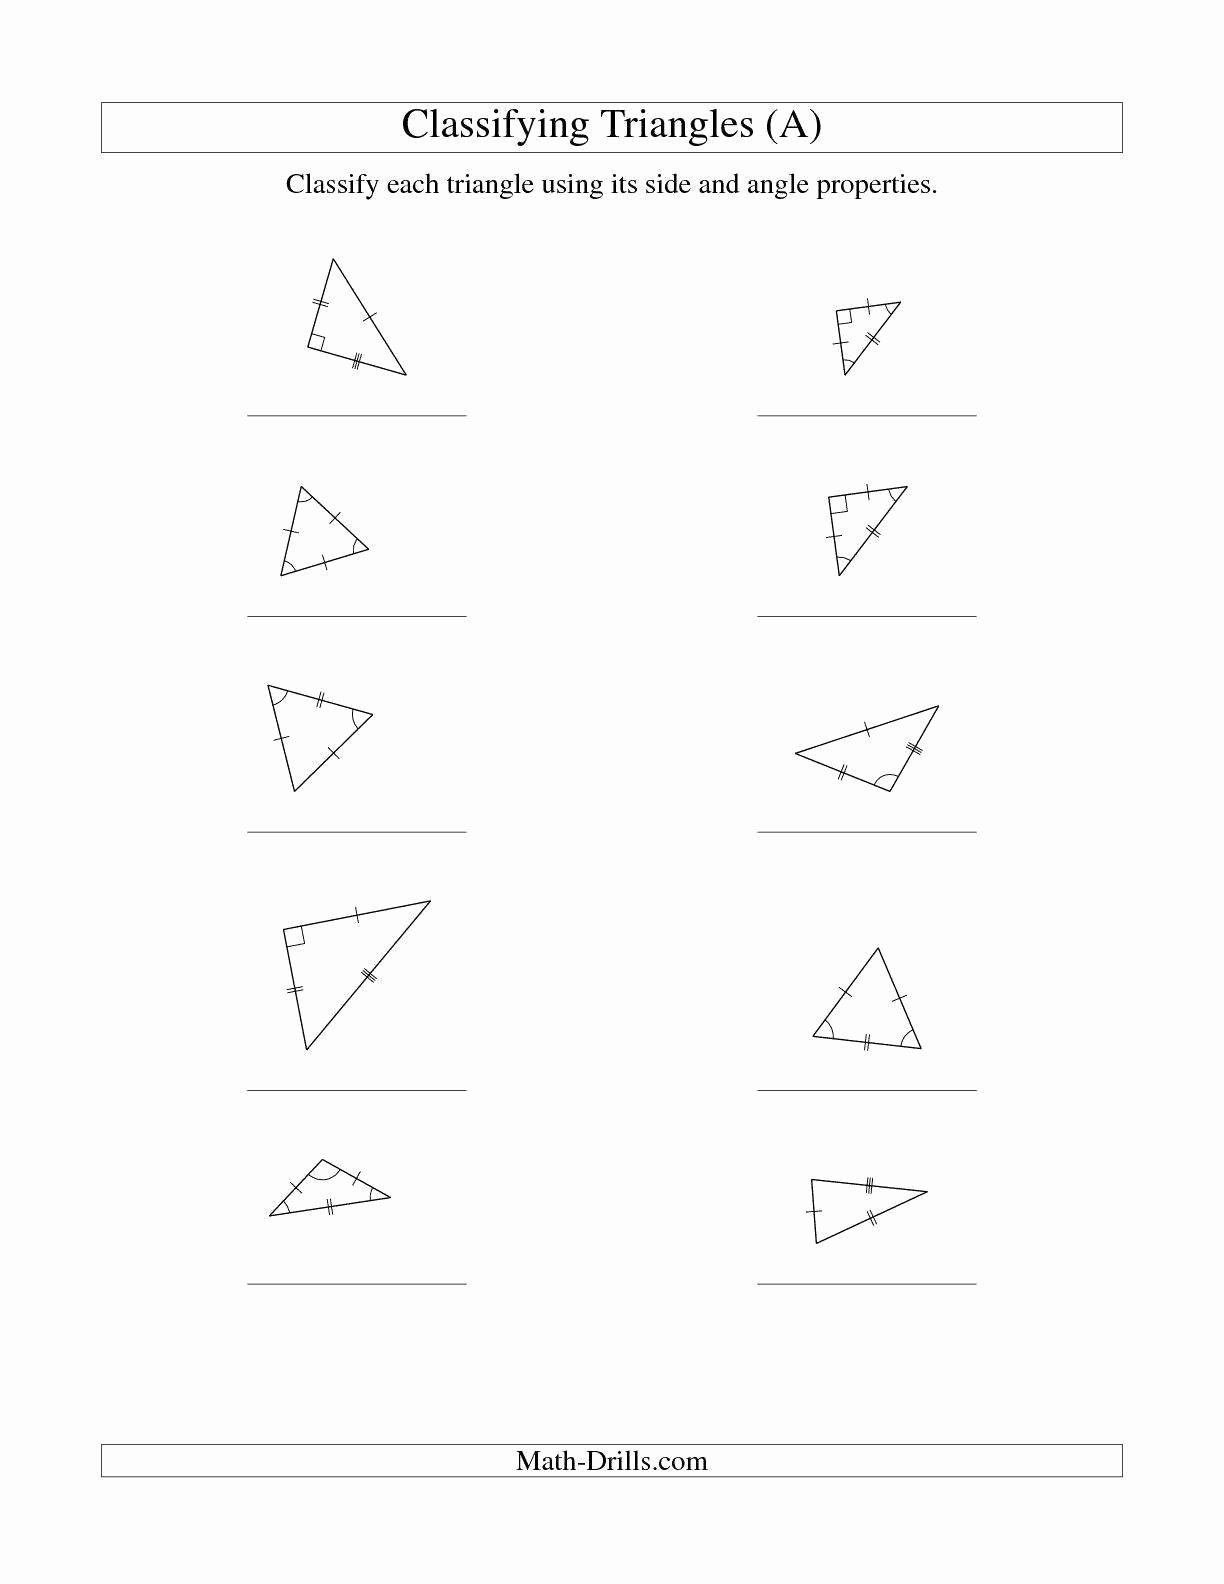 Geometry Transformation Composition Worksheet Unique Geometry Transformation Position Worksheet Answer Key